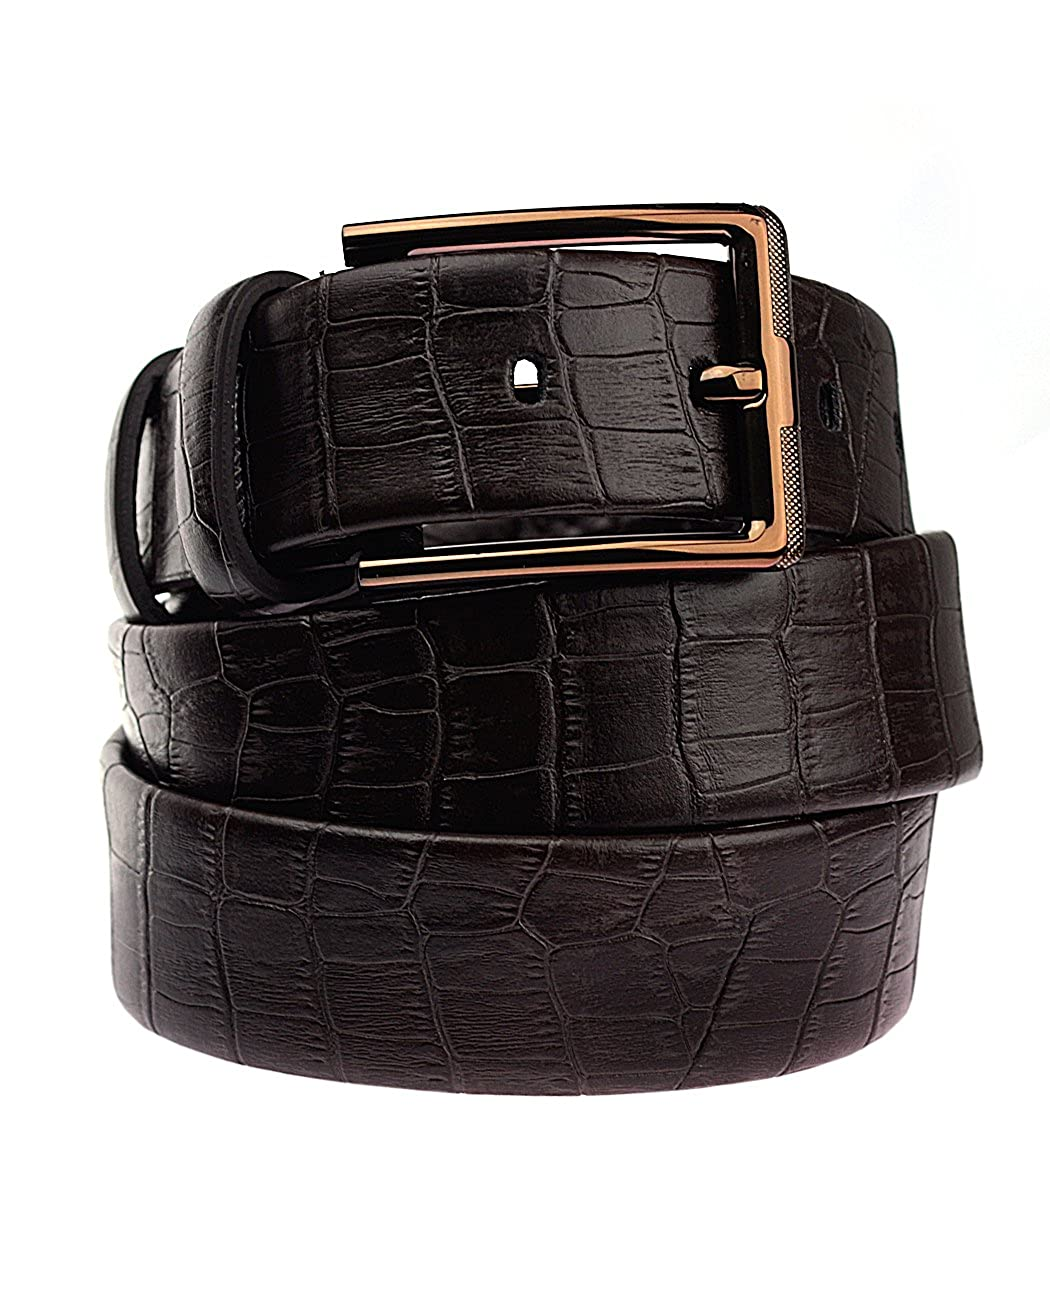 NYFASHION101 Reptile Skin Look Genuine Leather Square Buckle Belt